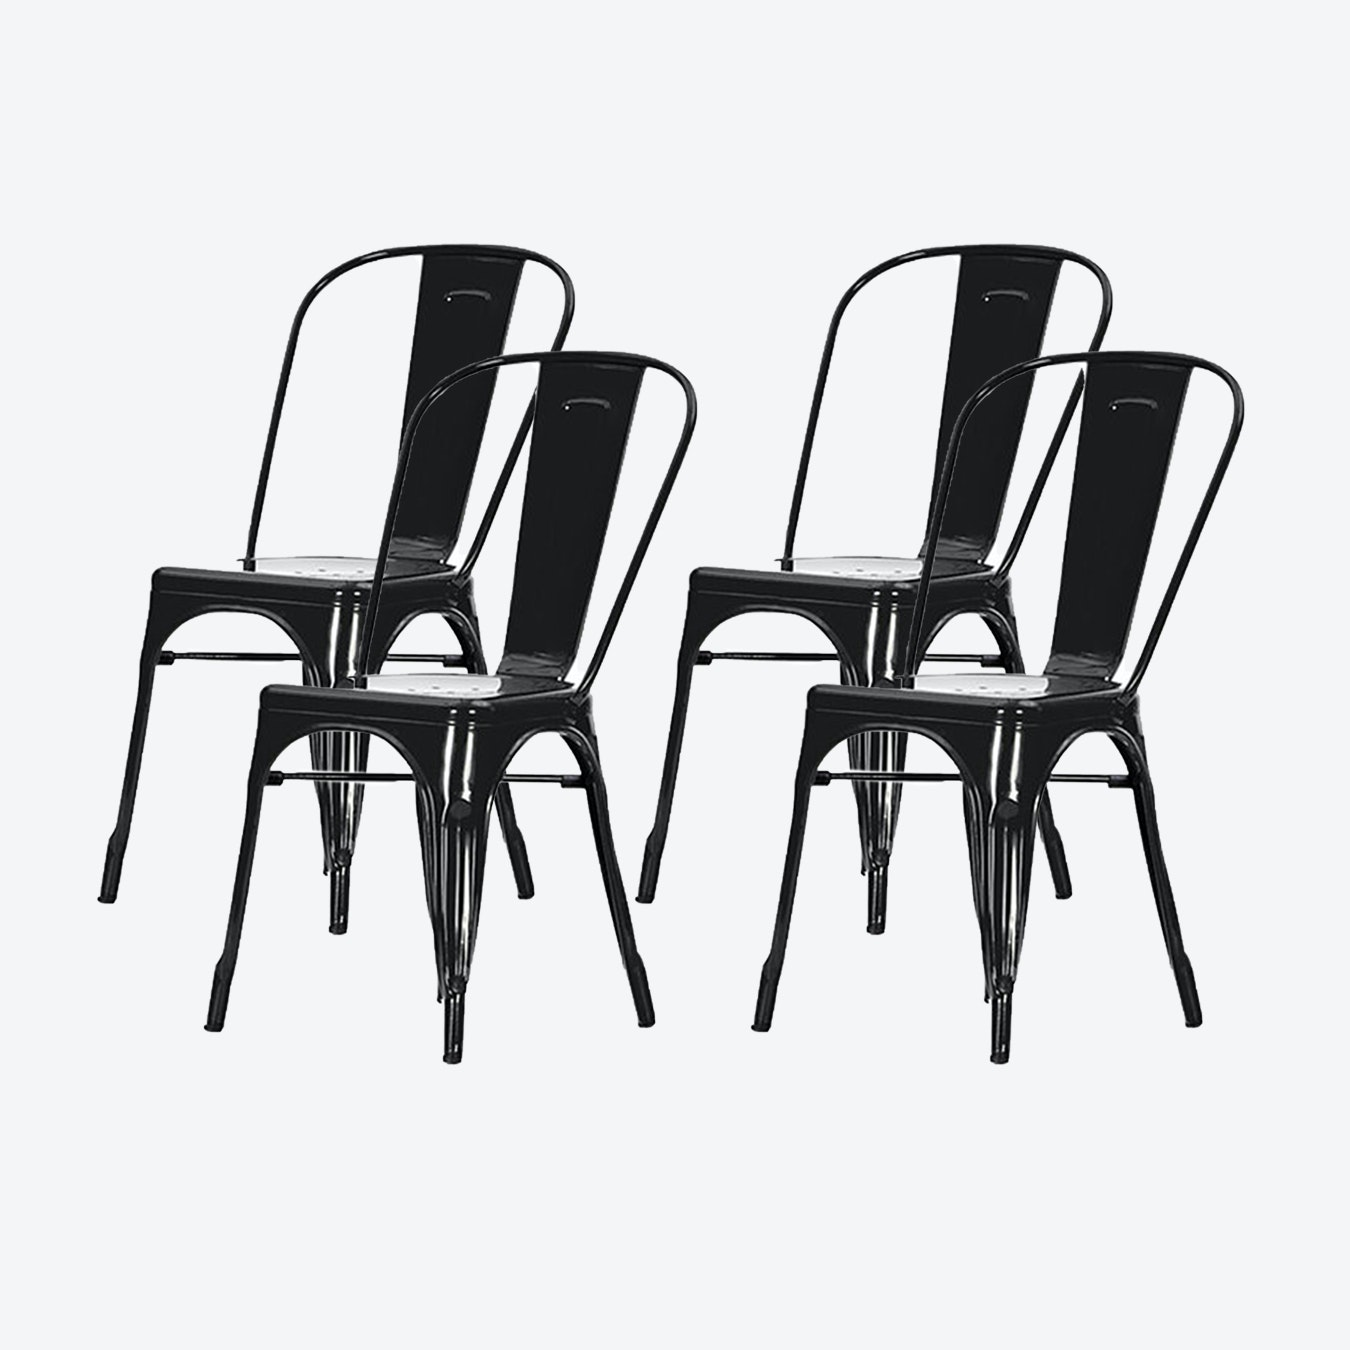 Industrial Style Metal Cafe Chair, Black, Set of 9